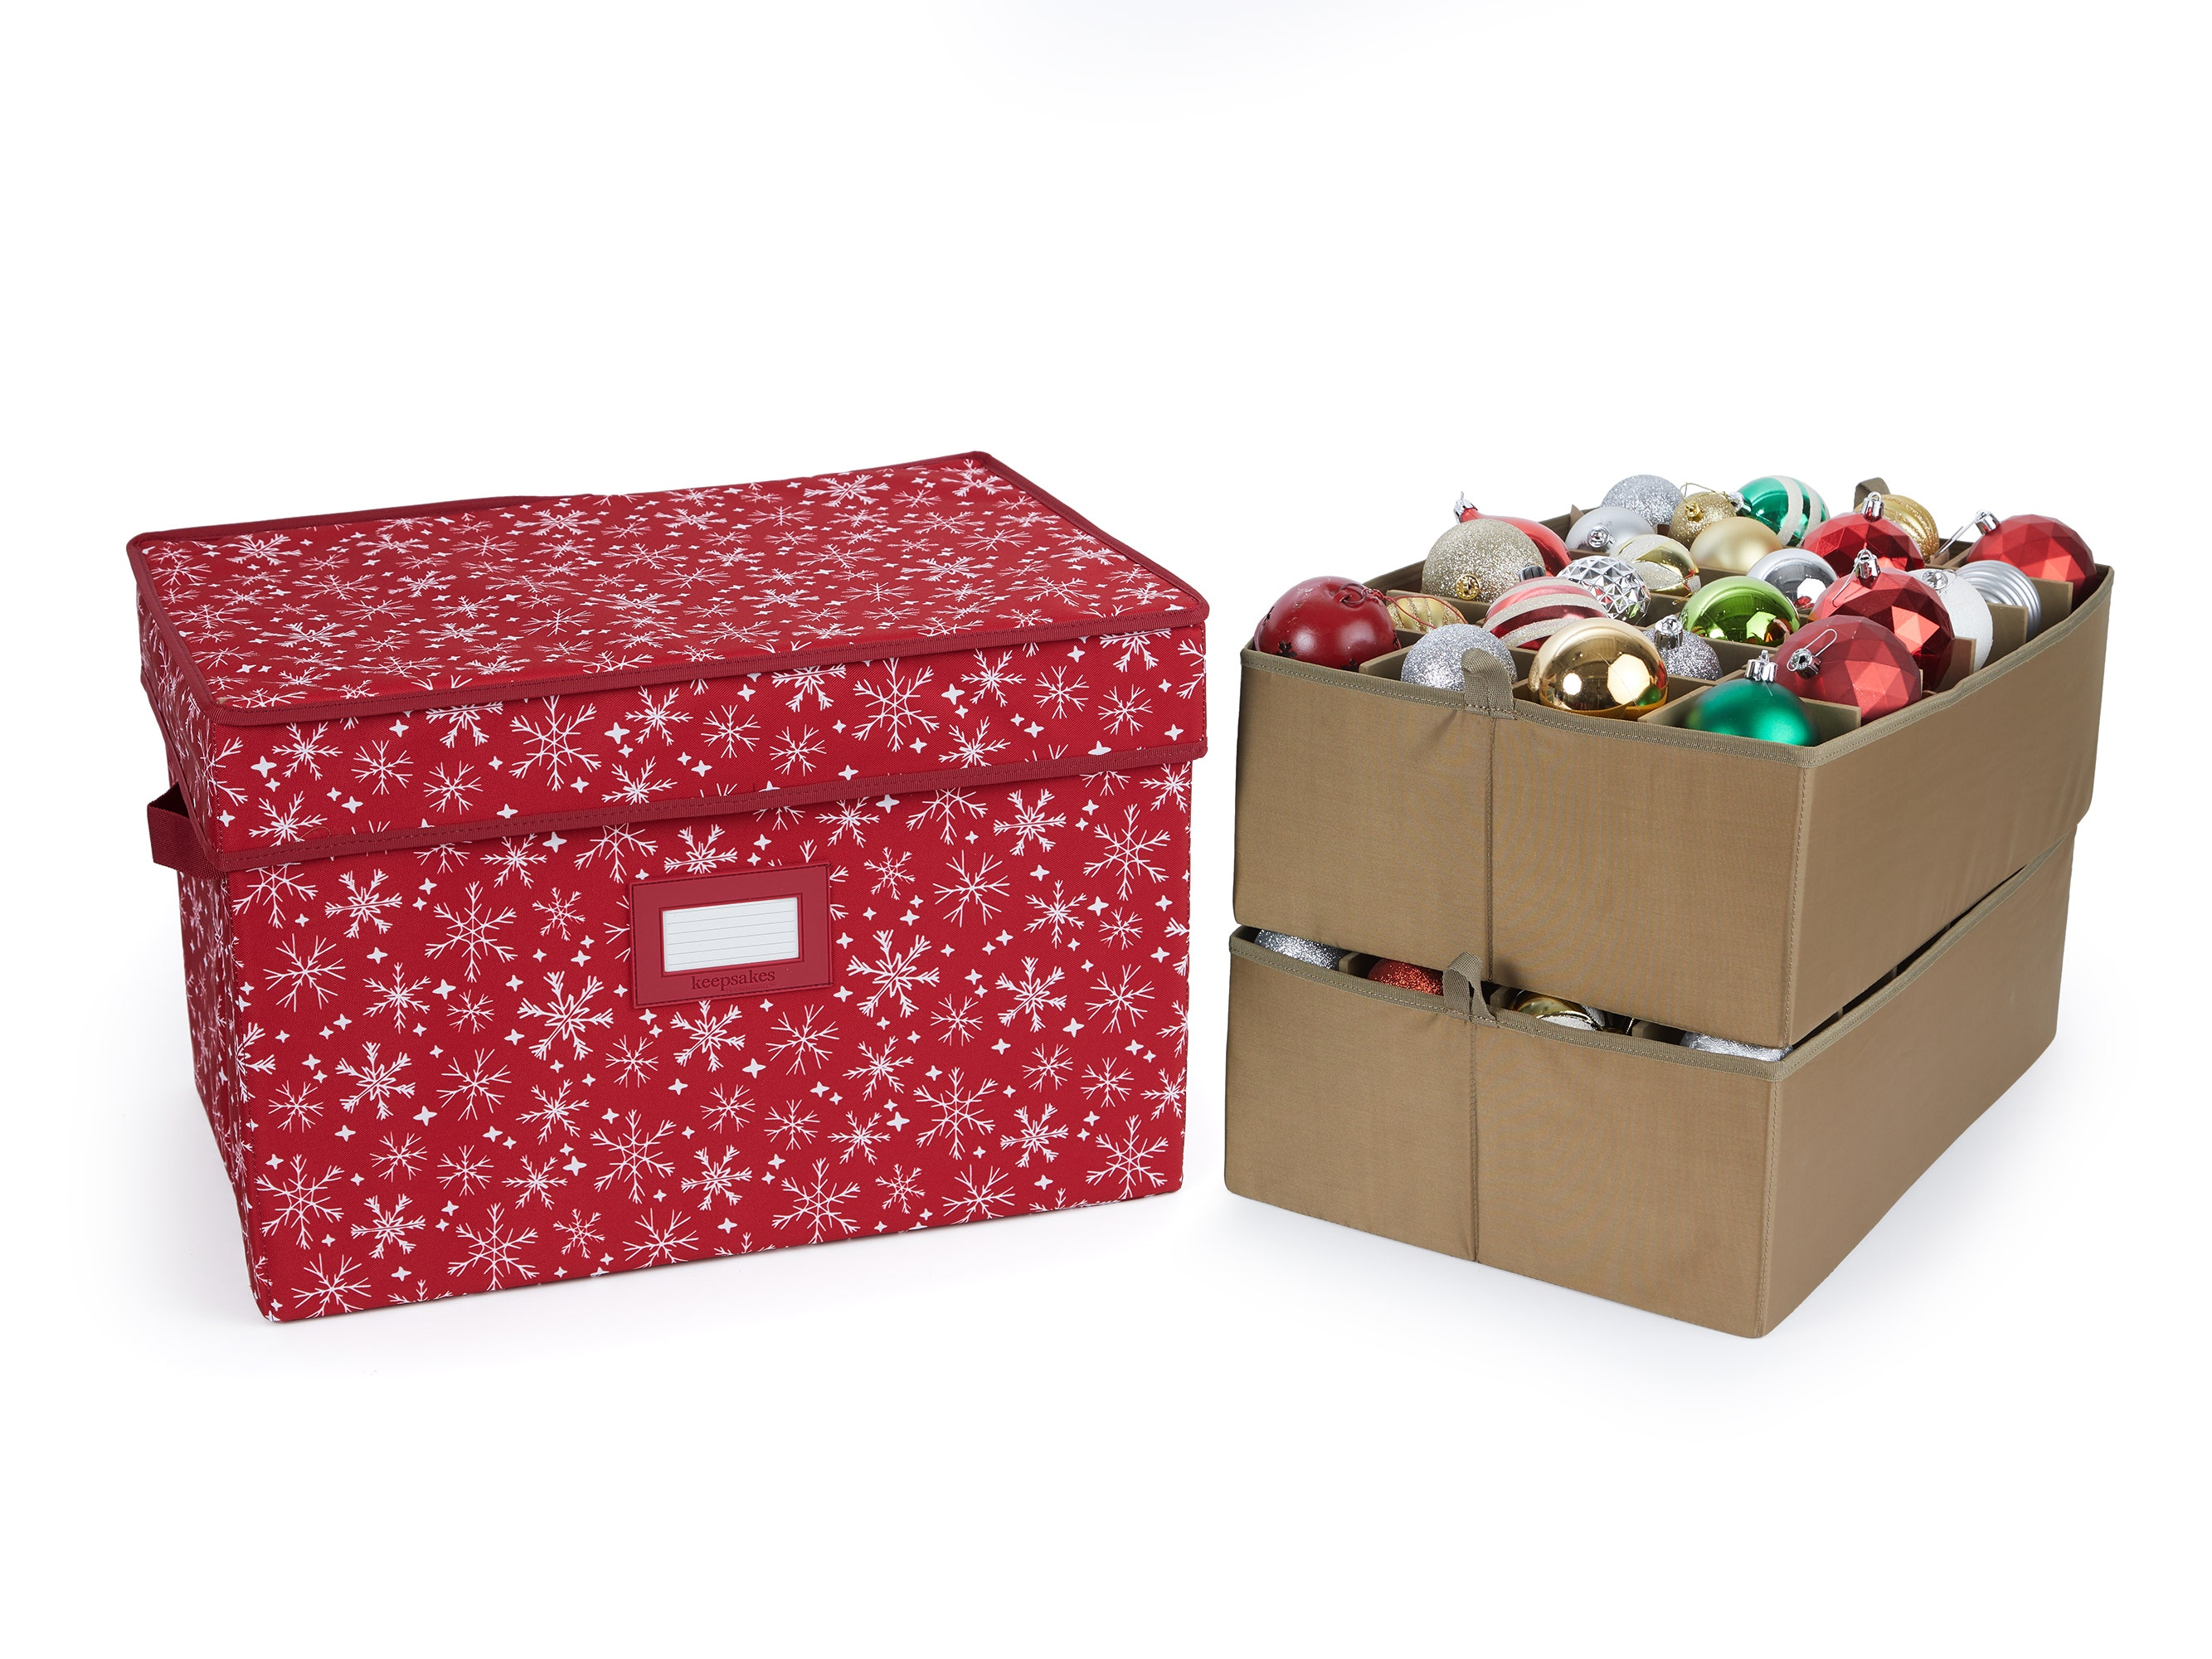 Red snowflake ornament storage box with two trays holding 48 ornaments